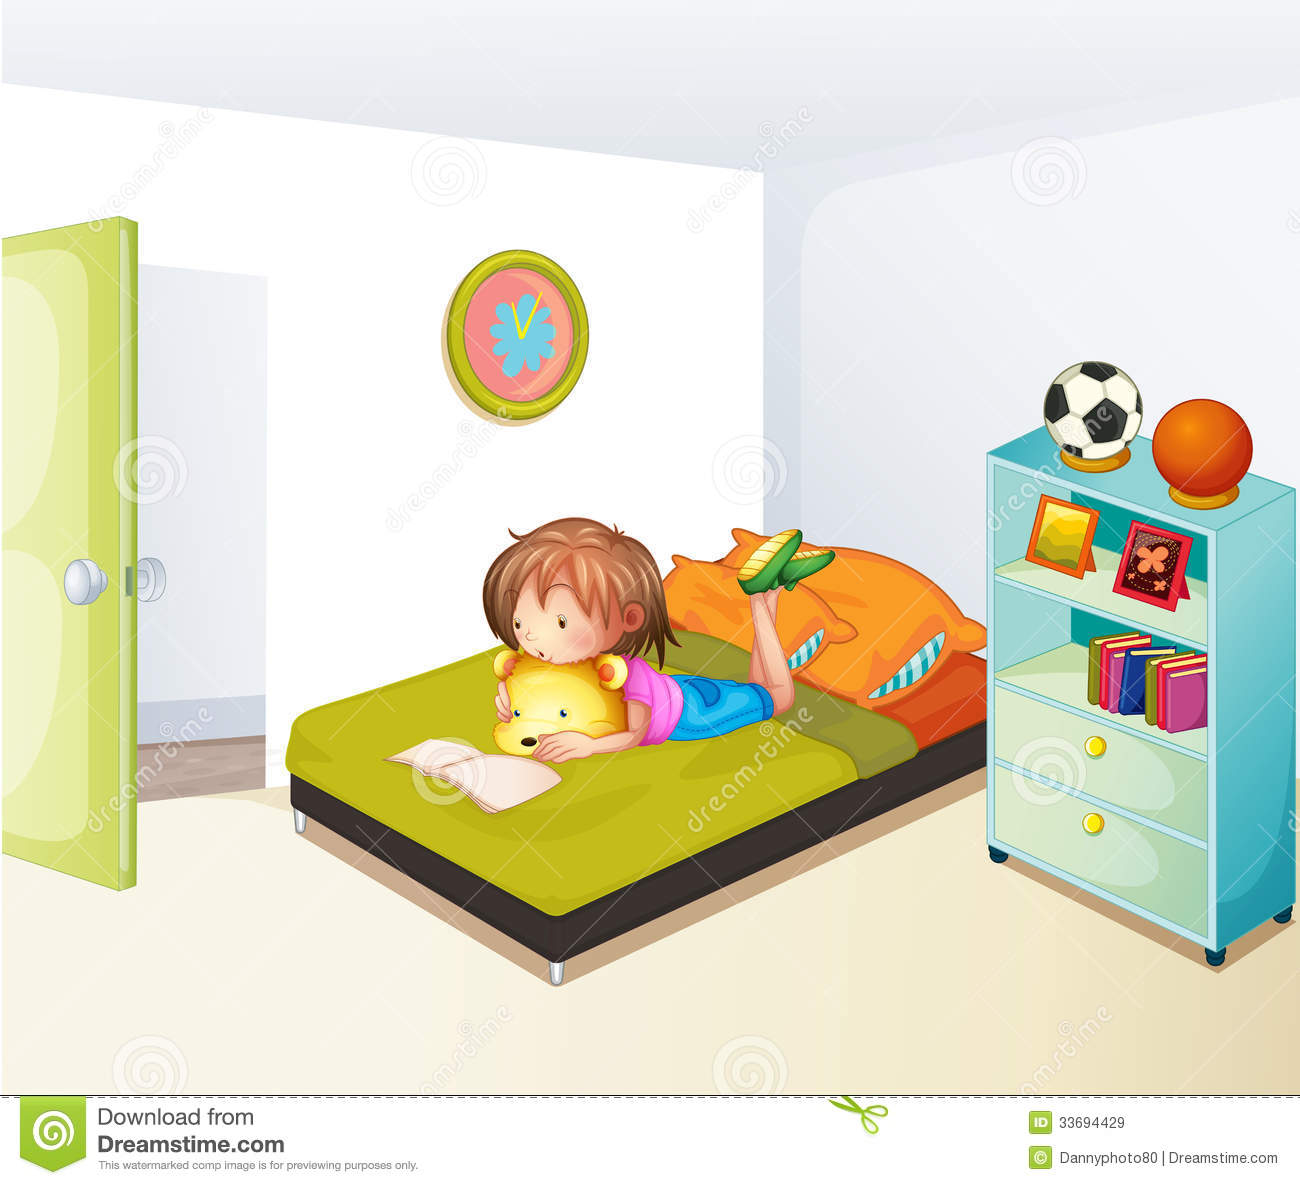 kids clean room clip art the image kid. Black Bedroom Furniture Sets. Home Design Ideas